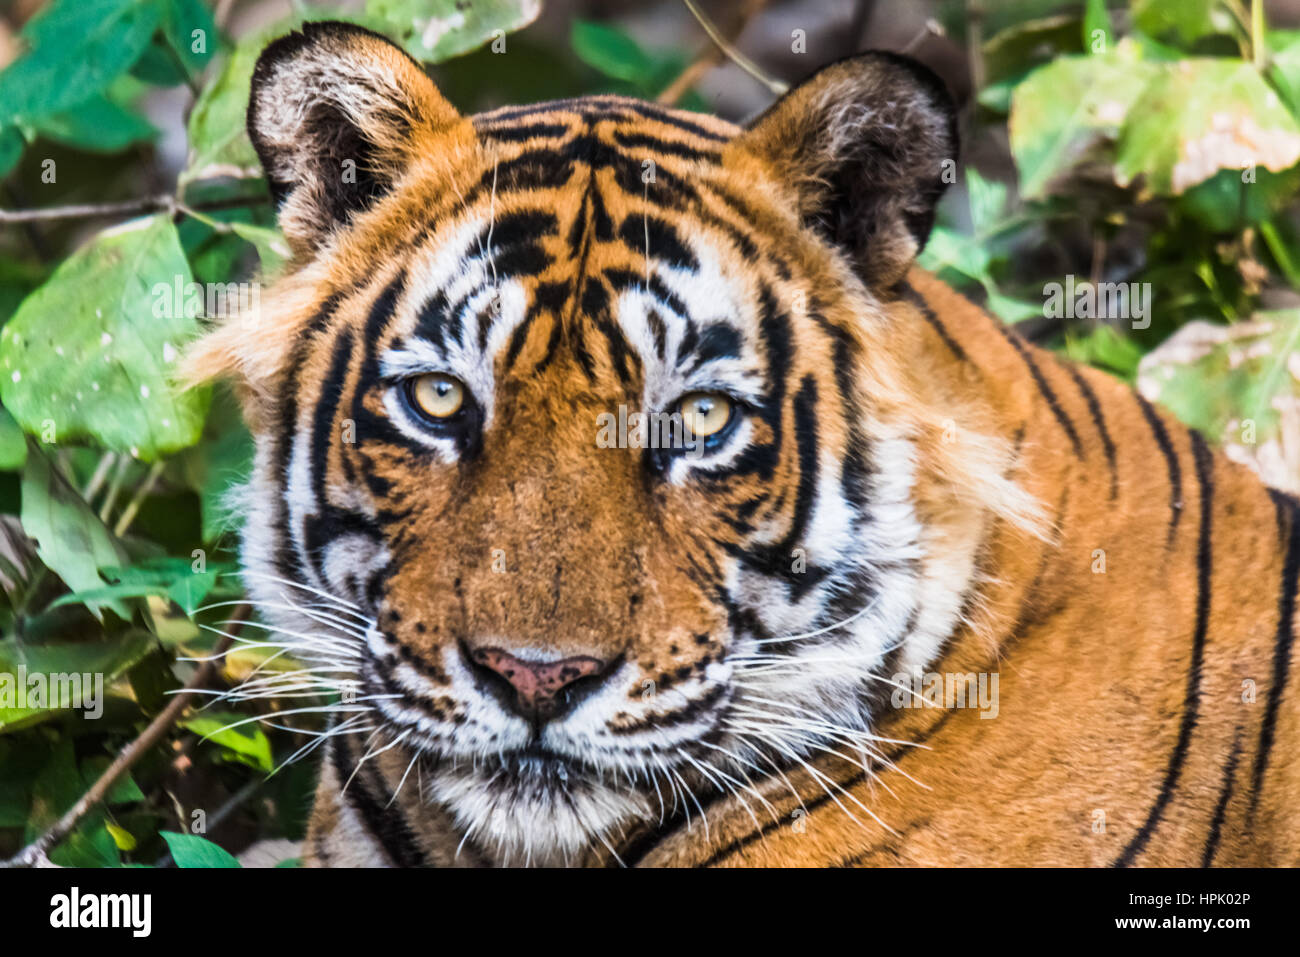 Close encounter with Royal Bengal Tiger named Ustaad - Stock Image